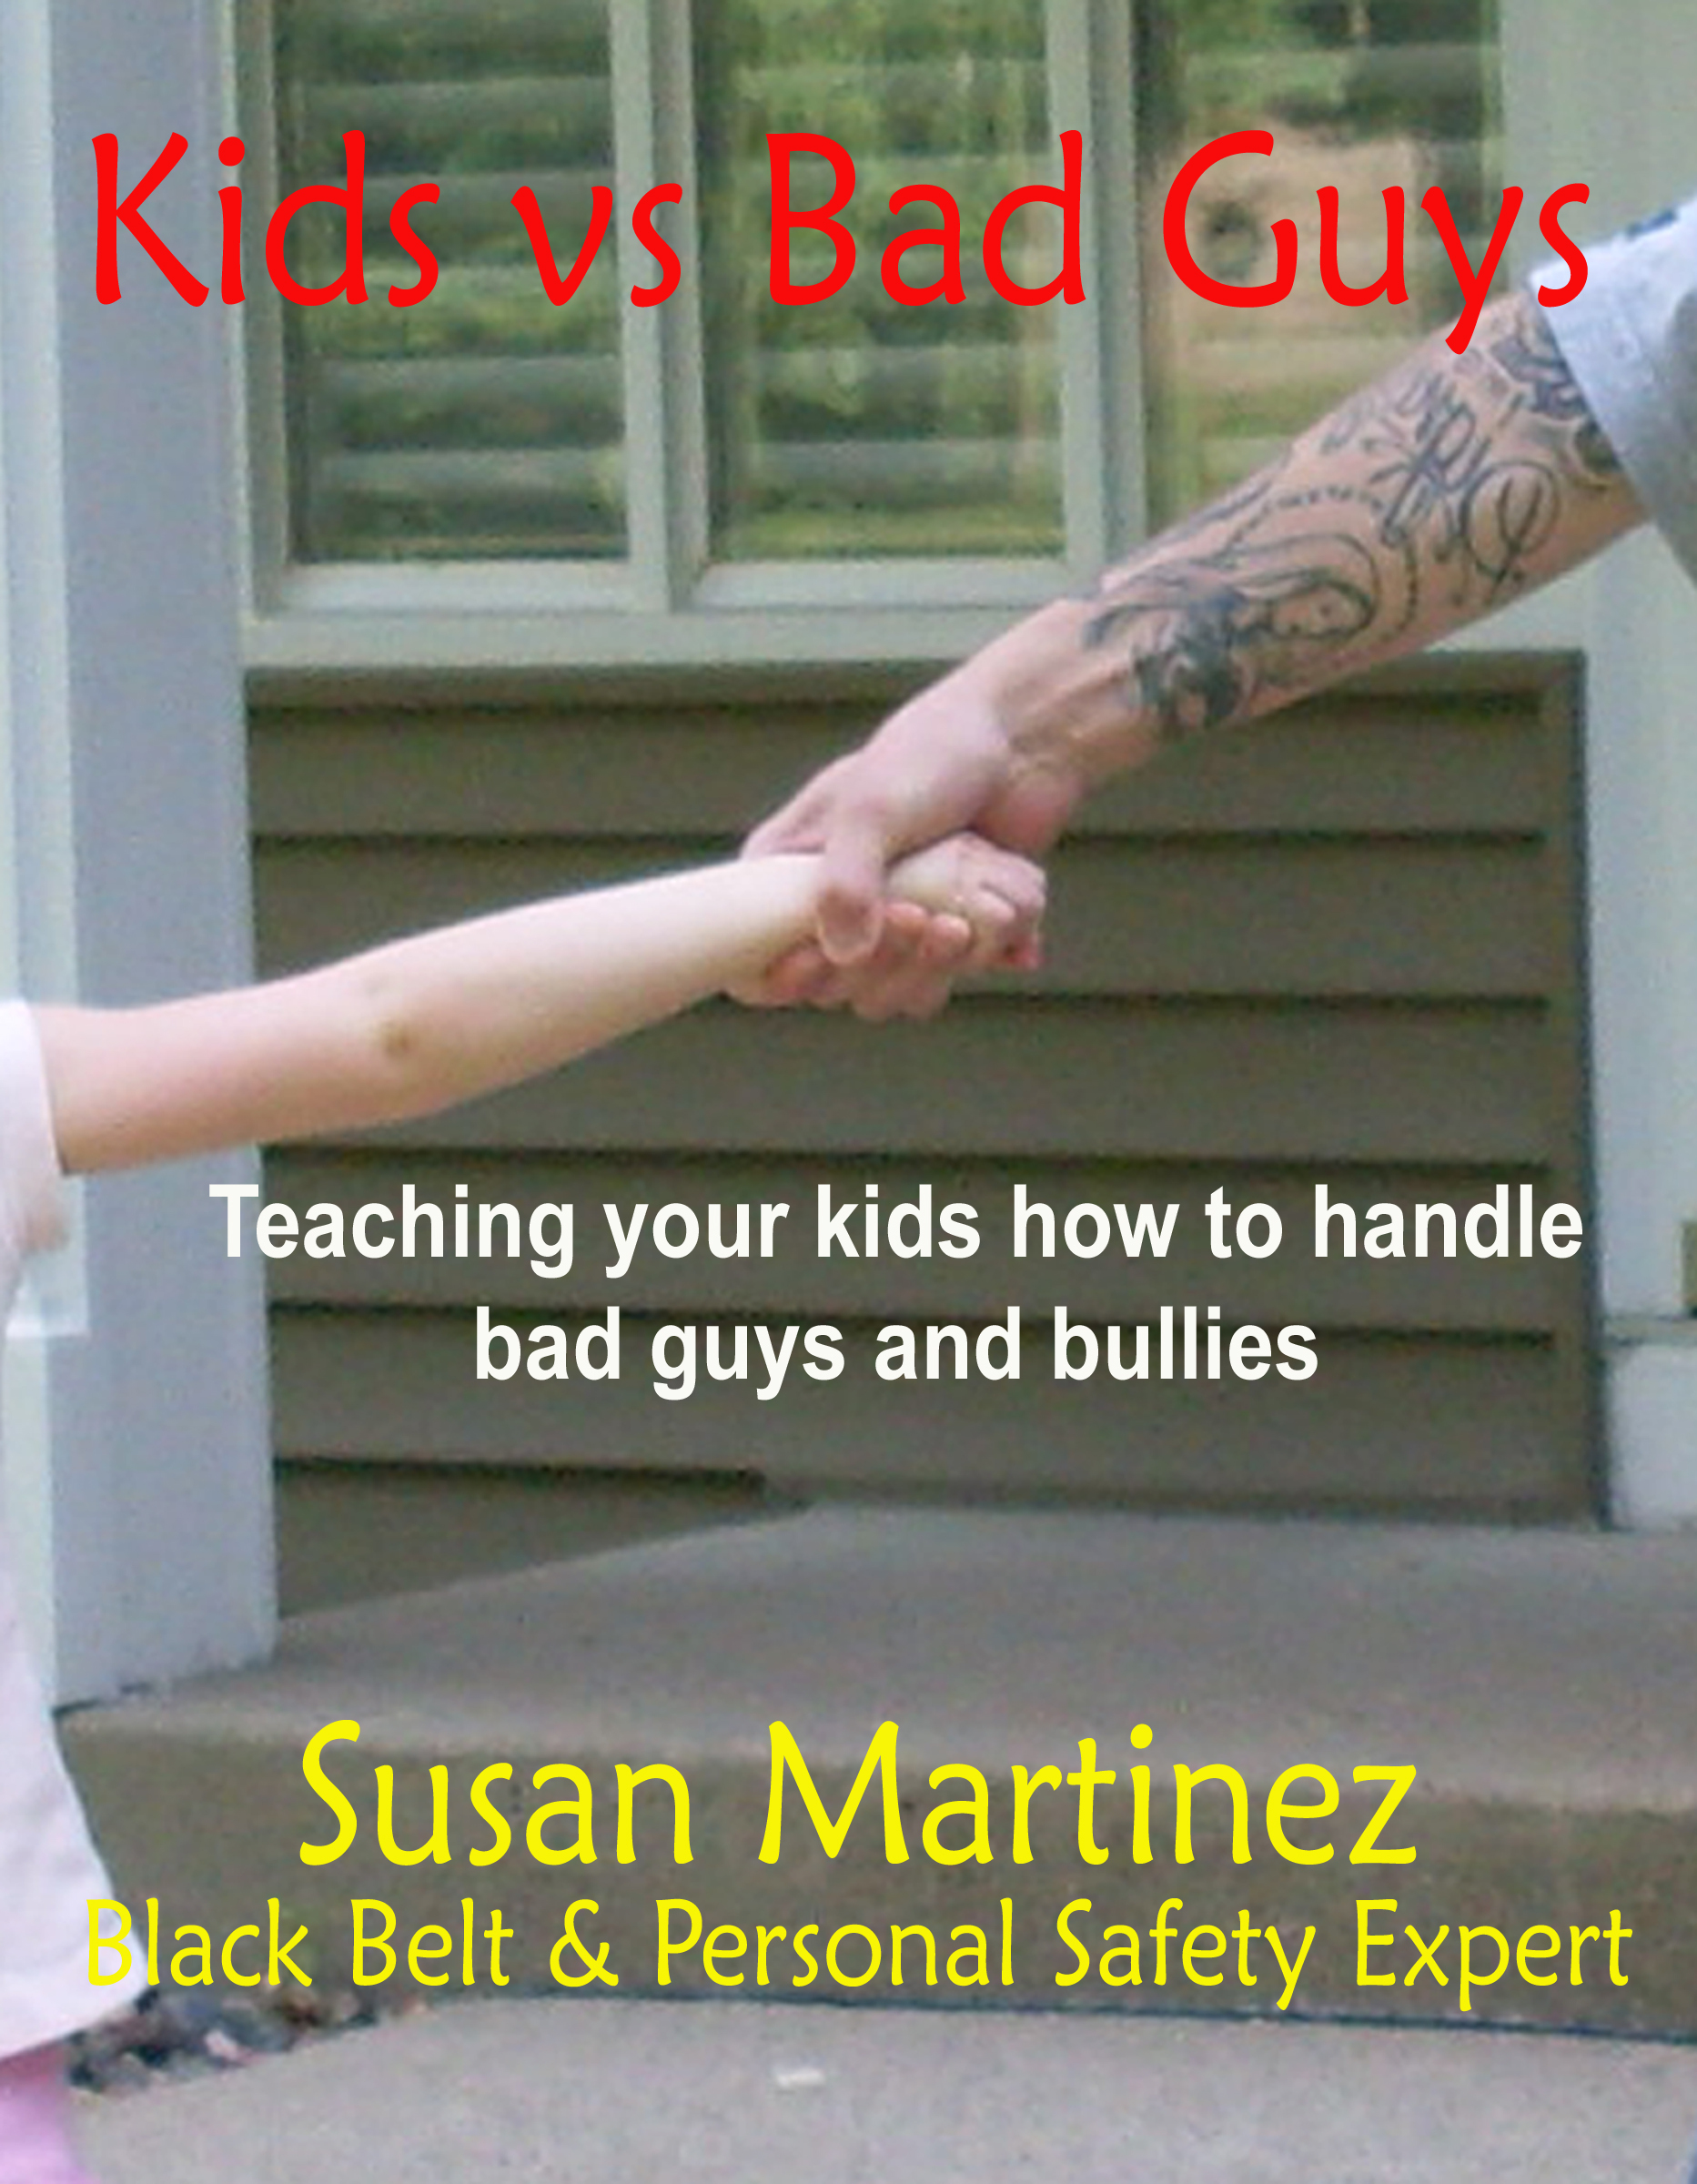 Kids vs. Bad Guys: Teaching Your Kids How to Handle Bad Guys and Bullies